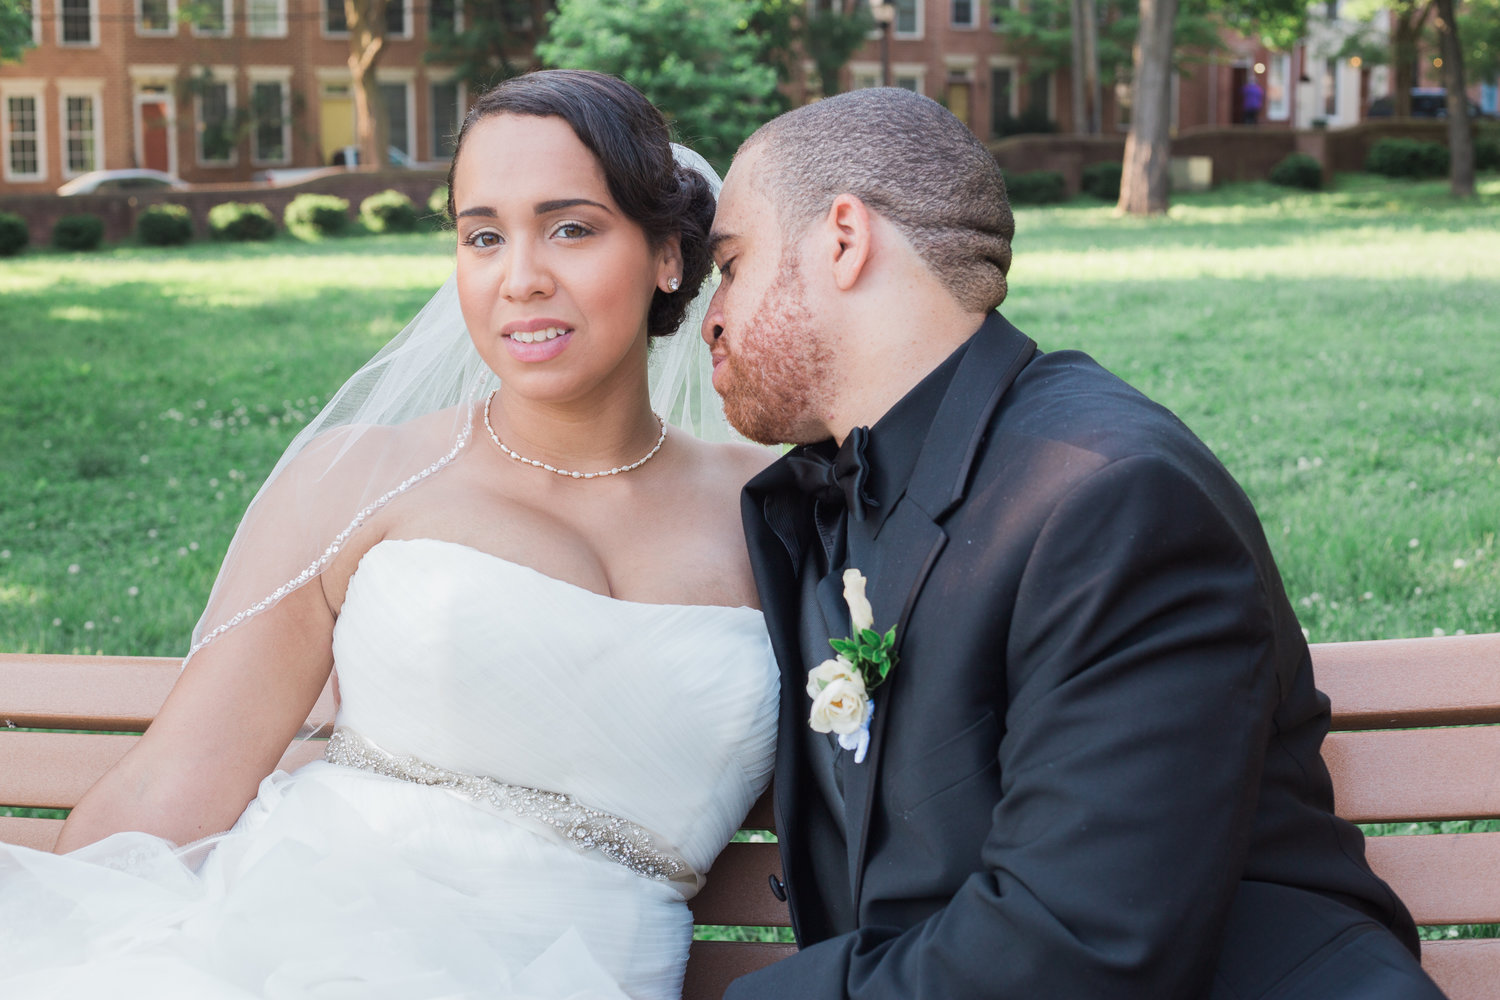 Black Wedding Photographers in Baltimore.jpeg